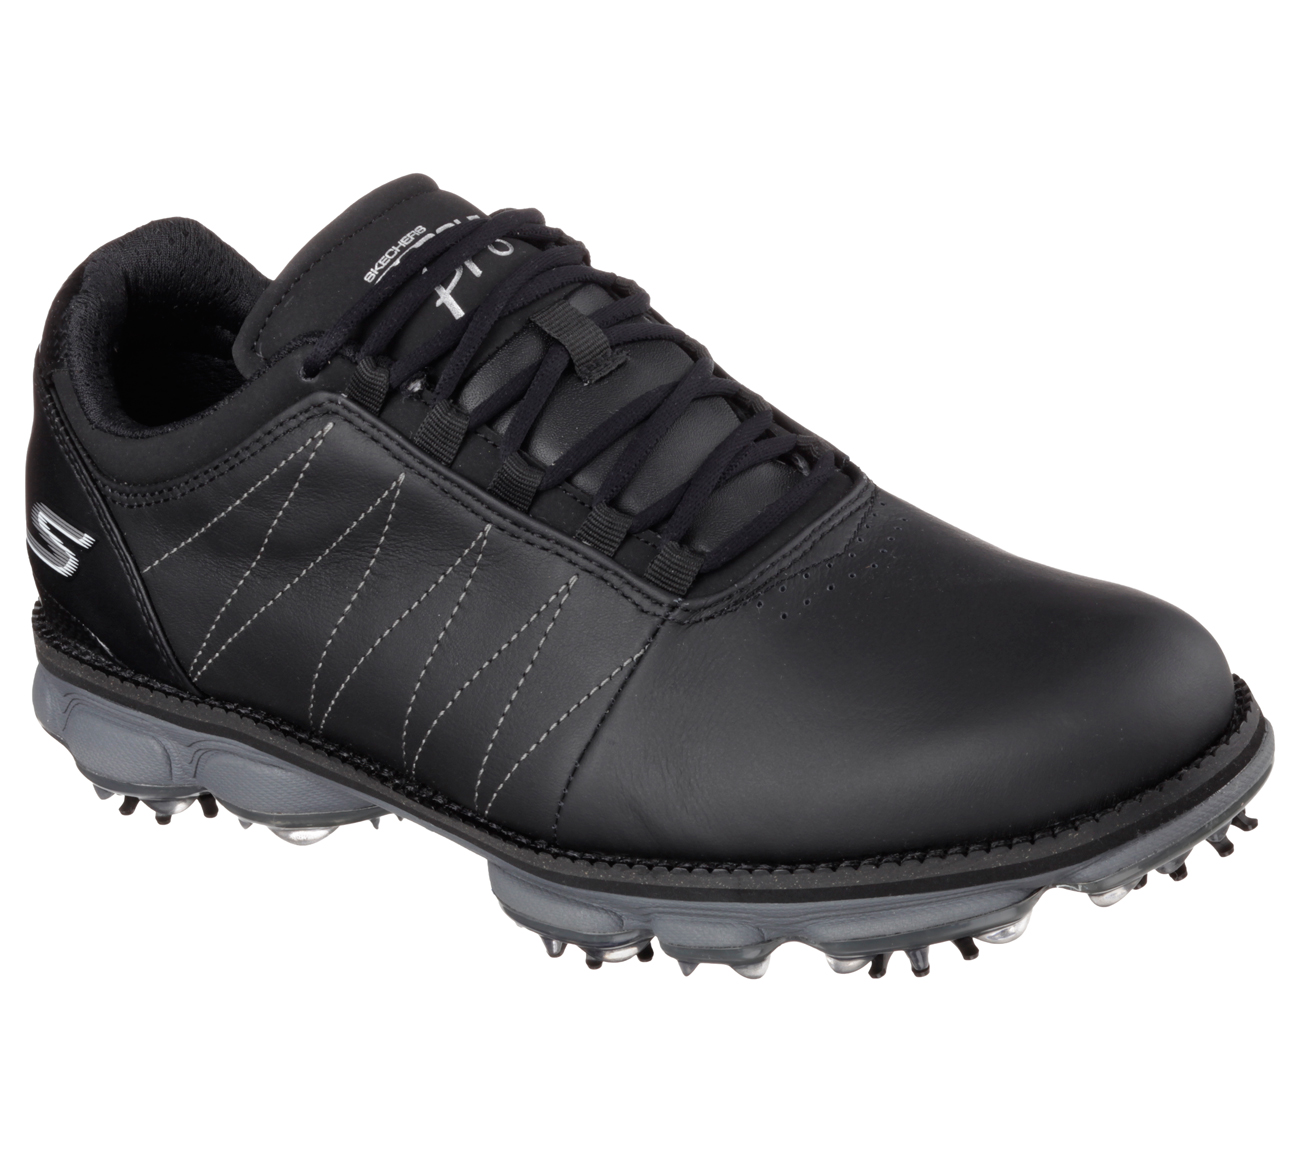 Skechers Go Golf Pro Shoes Review